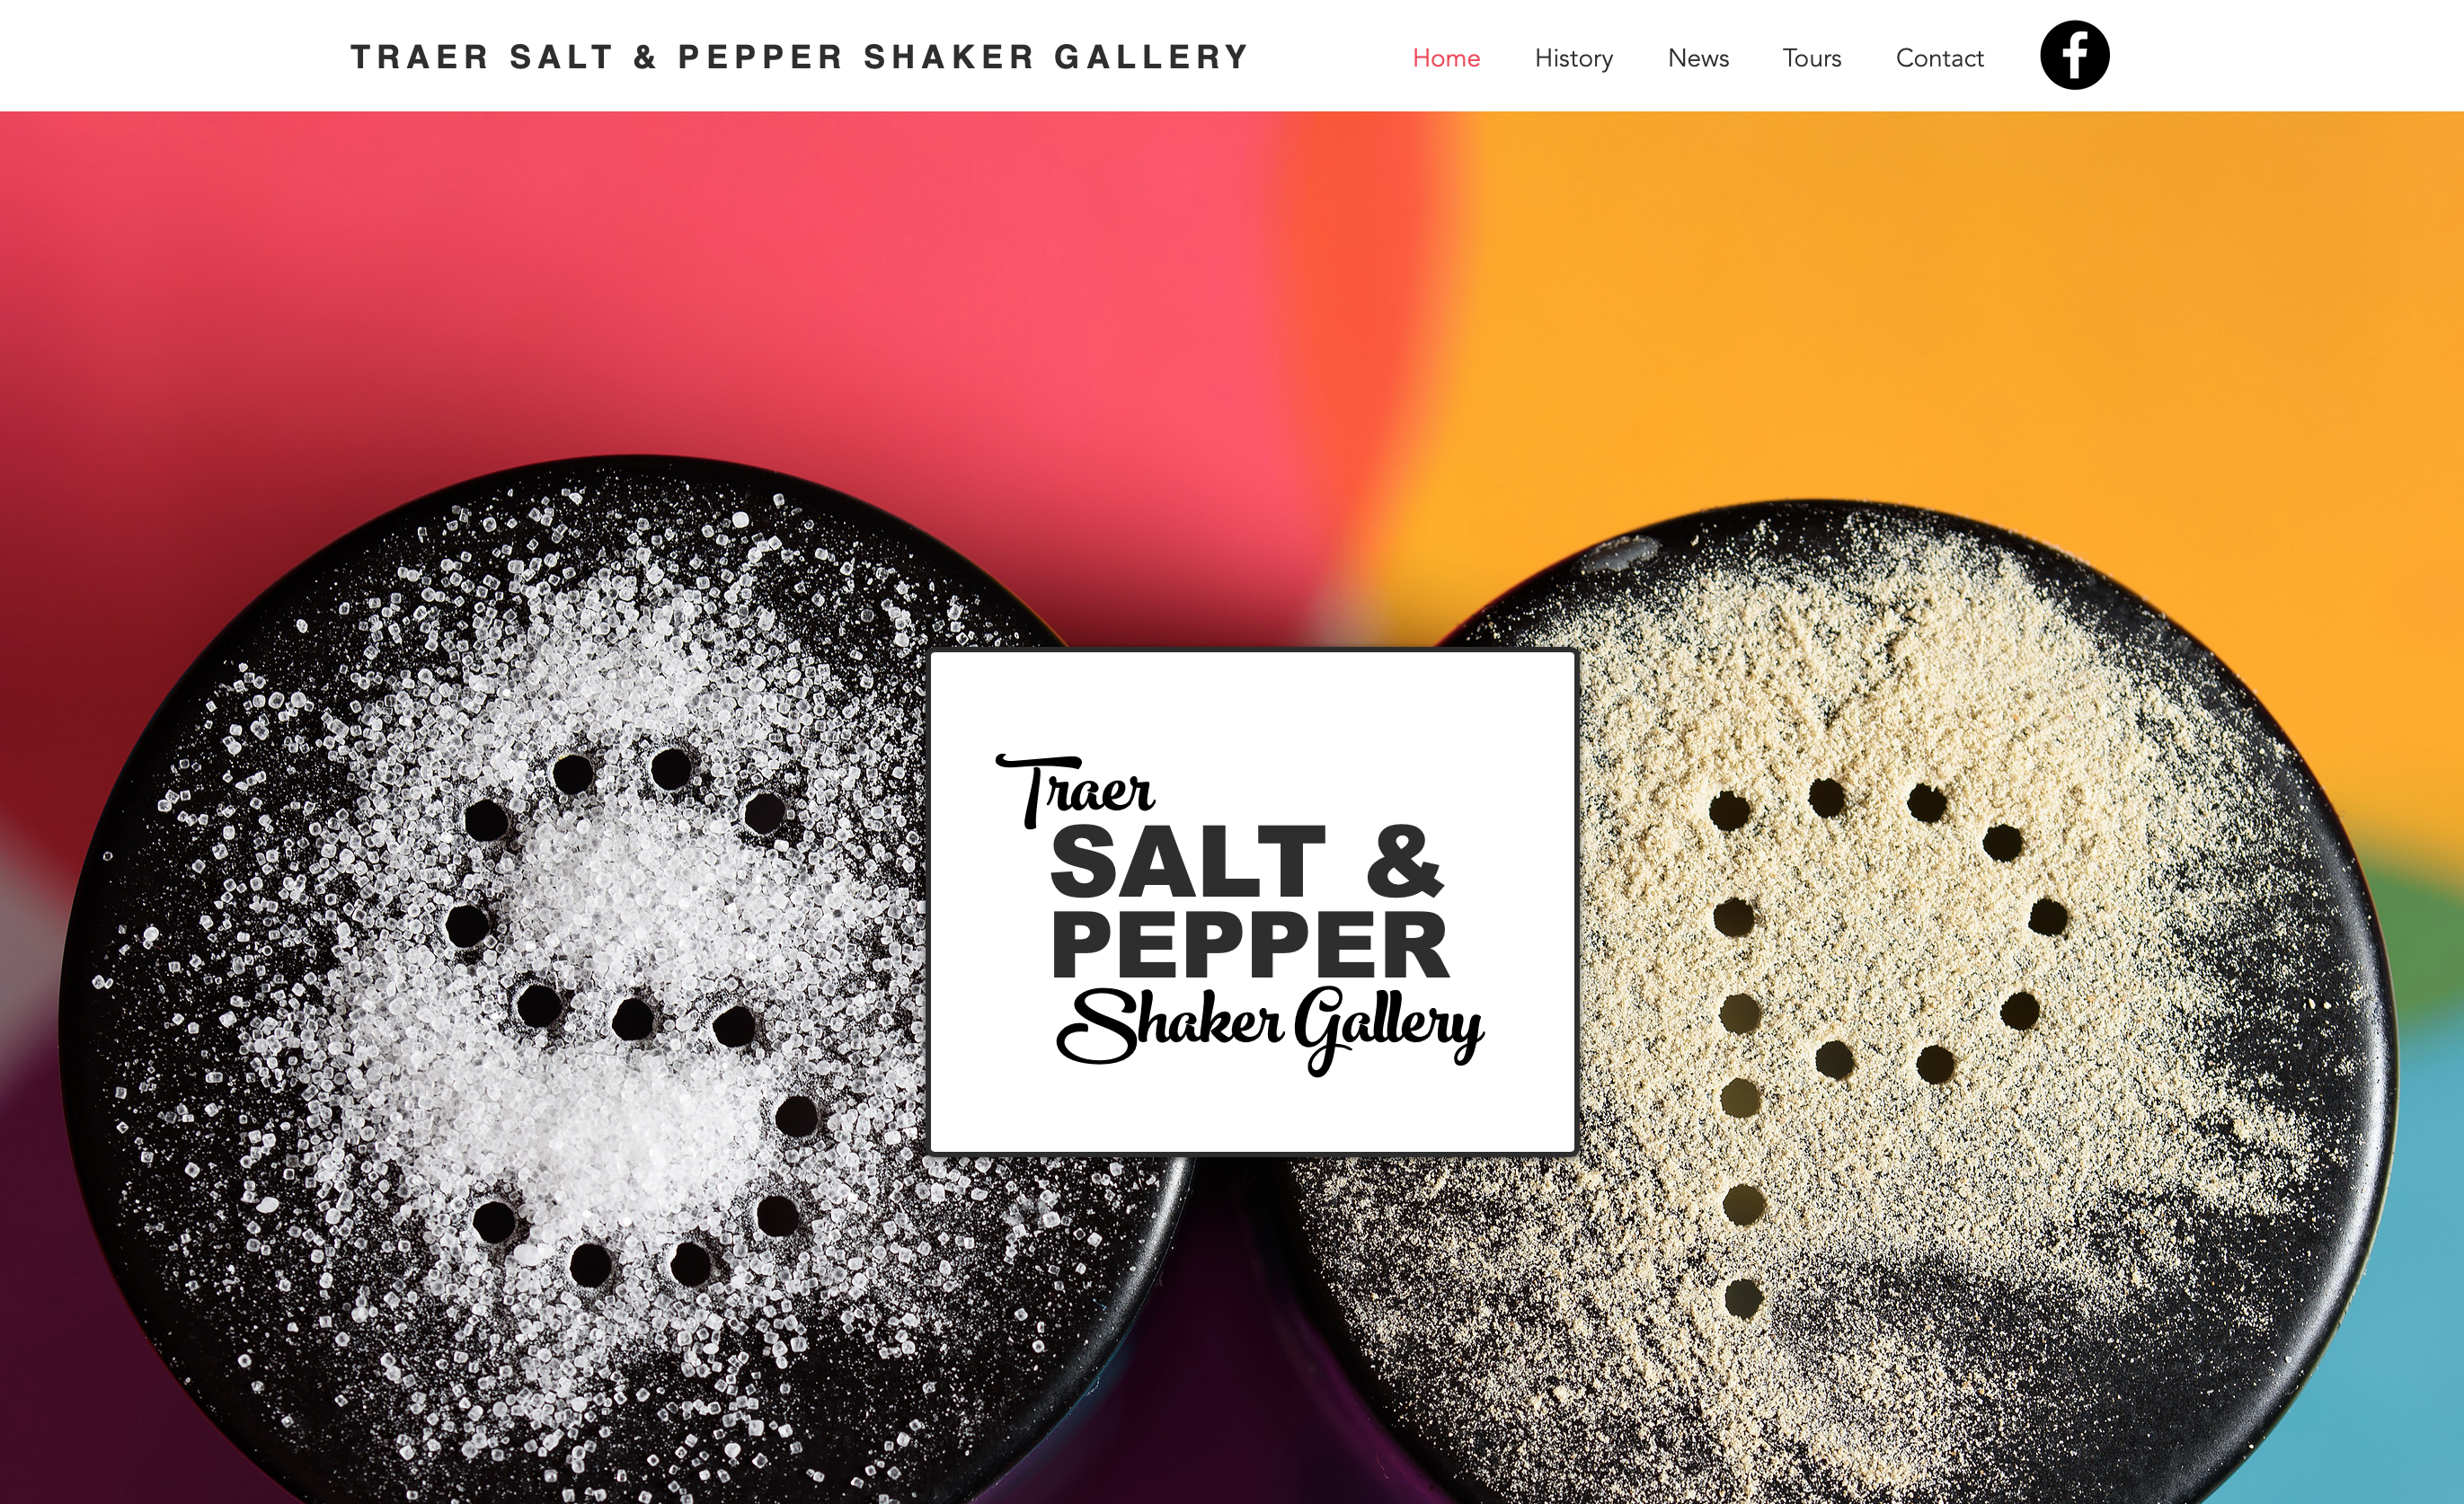 Traer Salt & Pepper Shaker Gallery